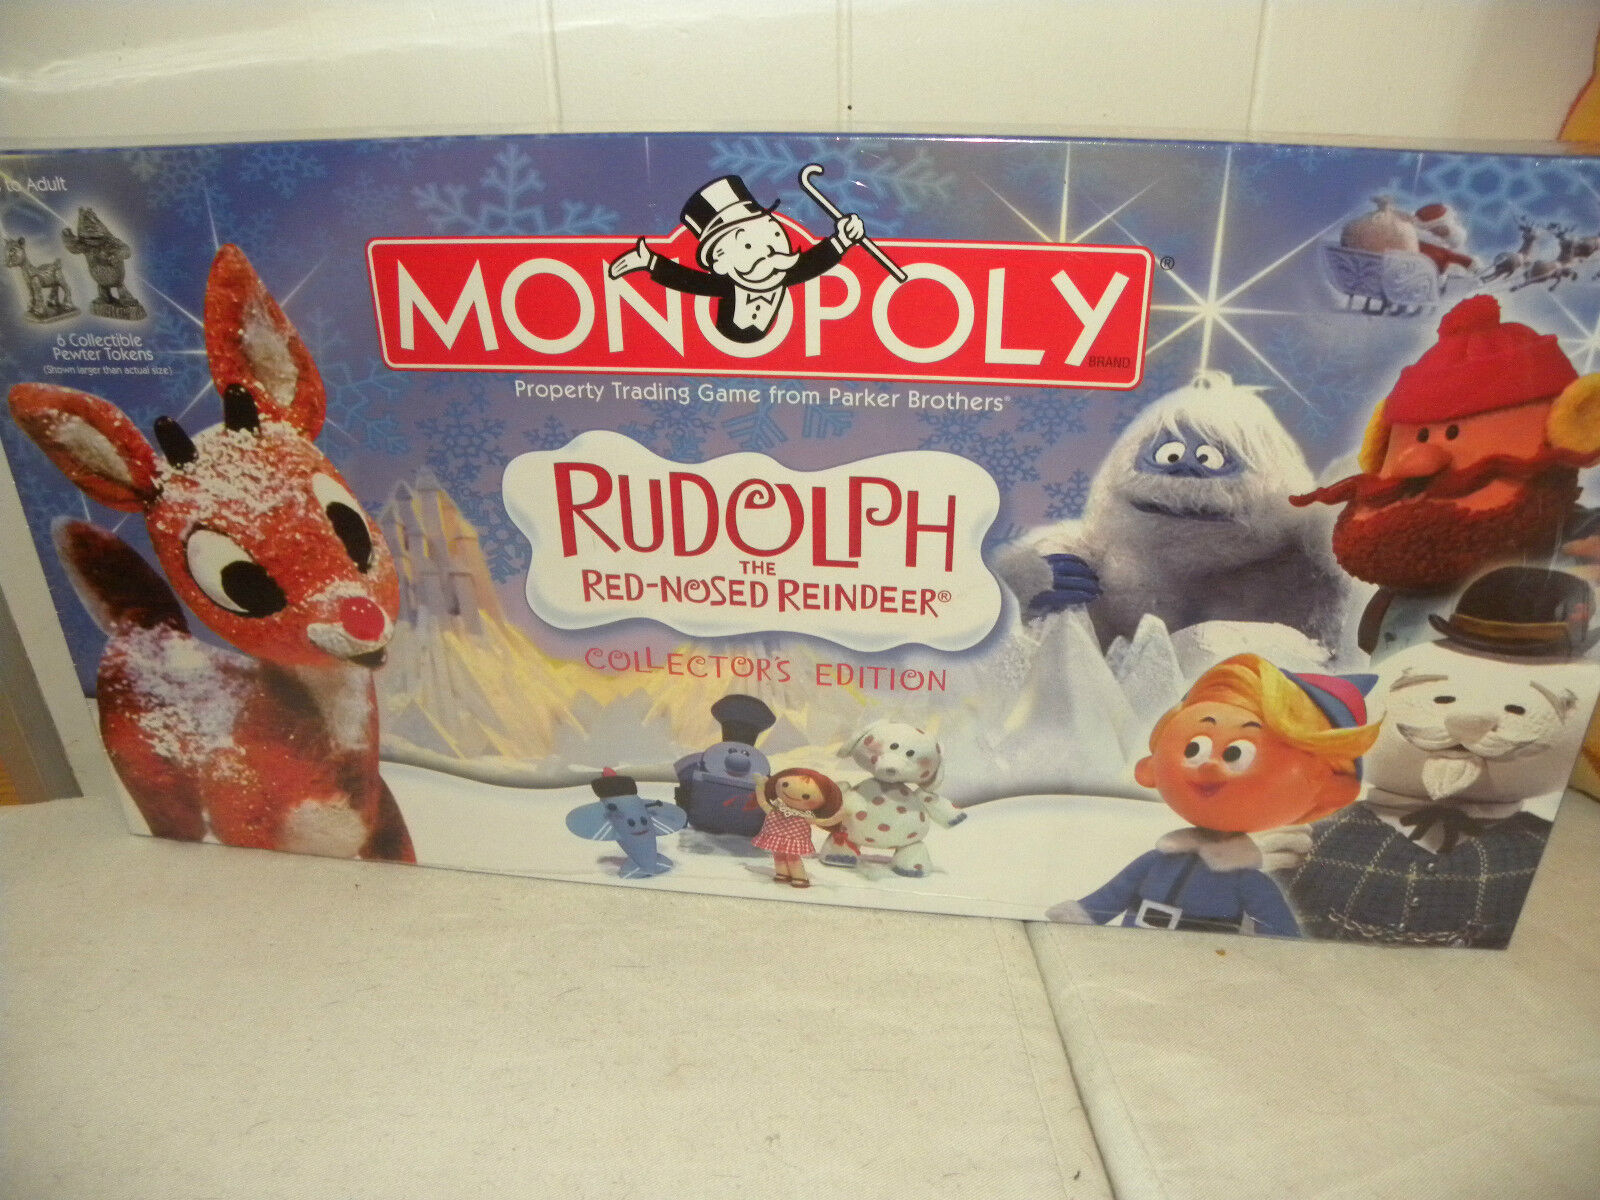 NEW   STILL SEALED   2006 RUDOLPH THE rot-NOSED REINEER  MONOPOLY LMTD EDITION